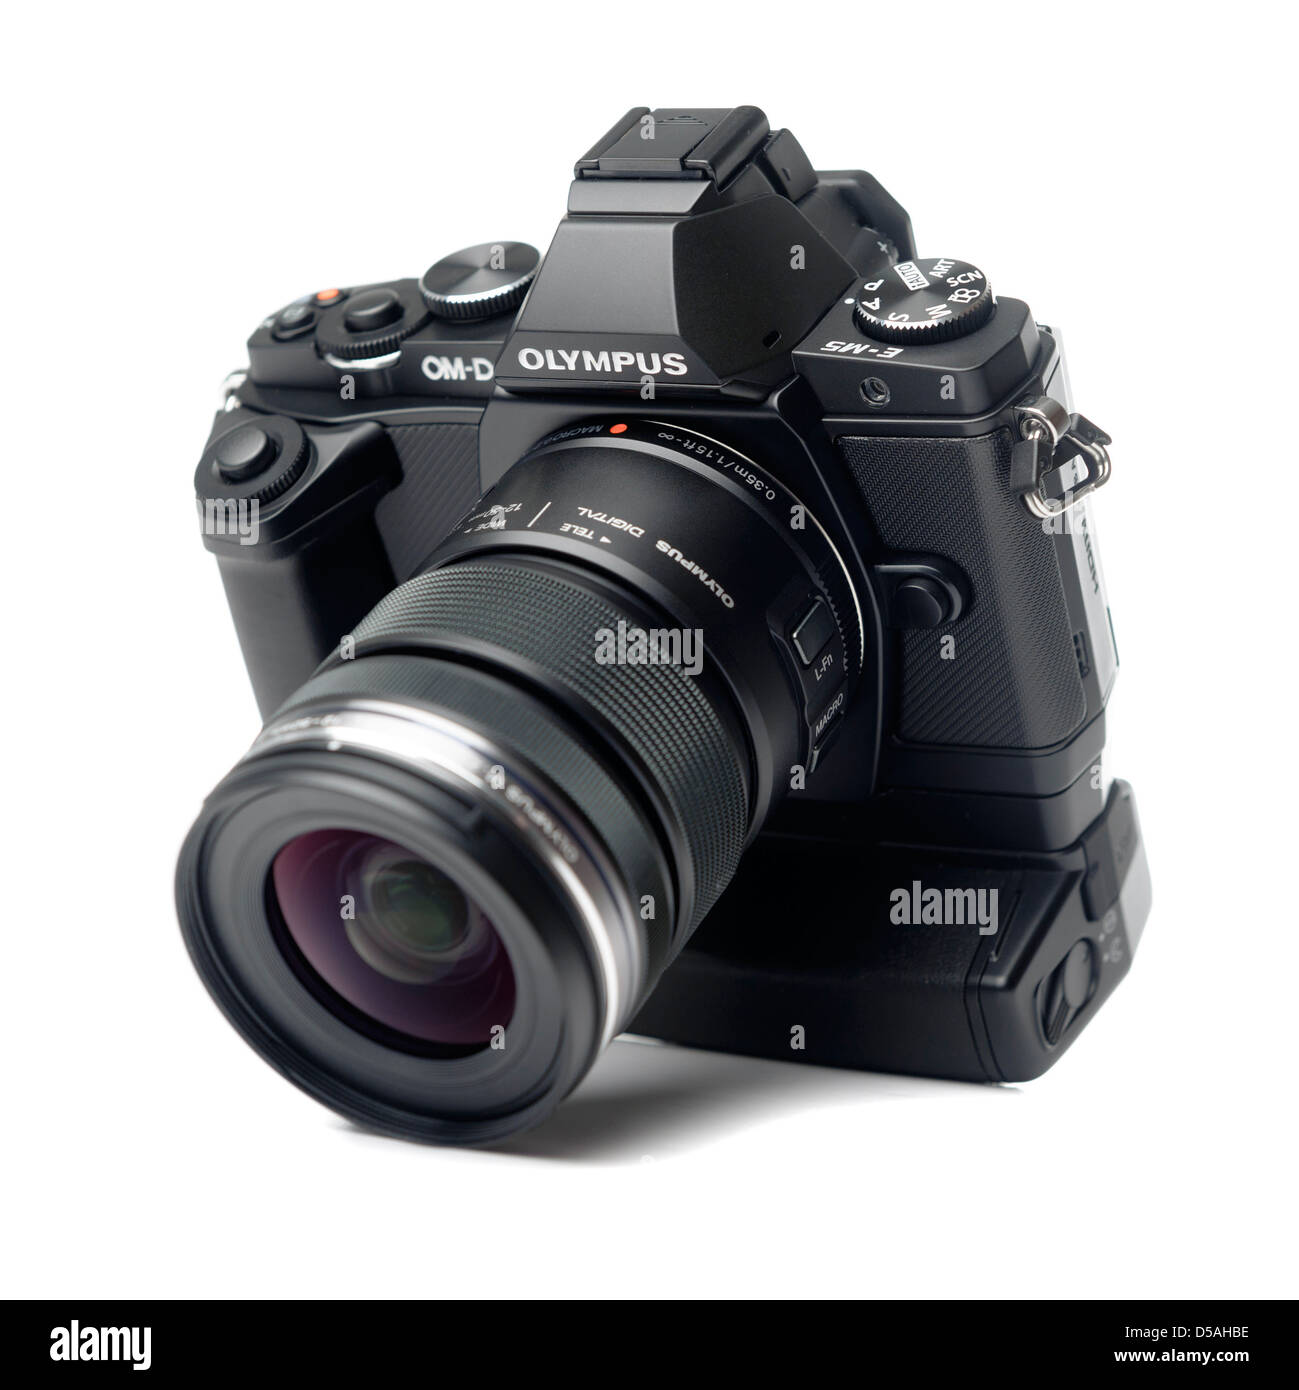 Olympus OM-D E-M5 digital mirrorless camera with HLD-6 battery grip and Zuiko 12-50mm f/3.5-5.6 zoom lens - Stock Image